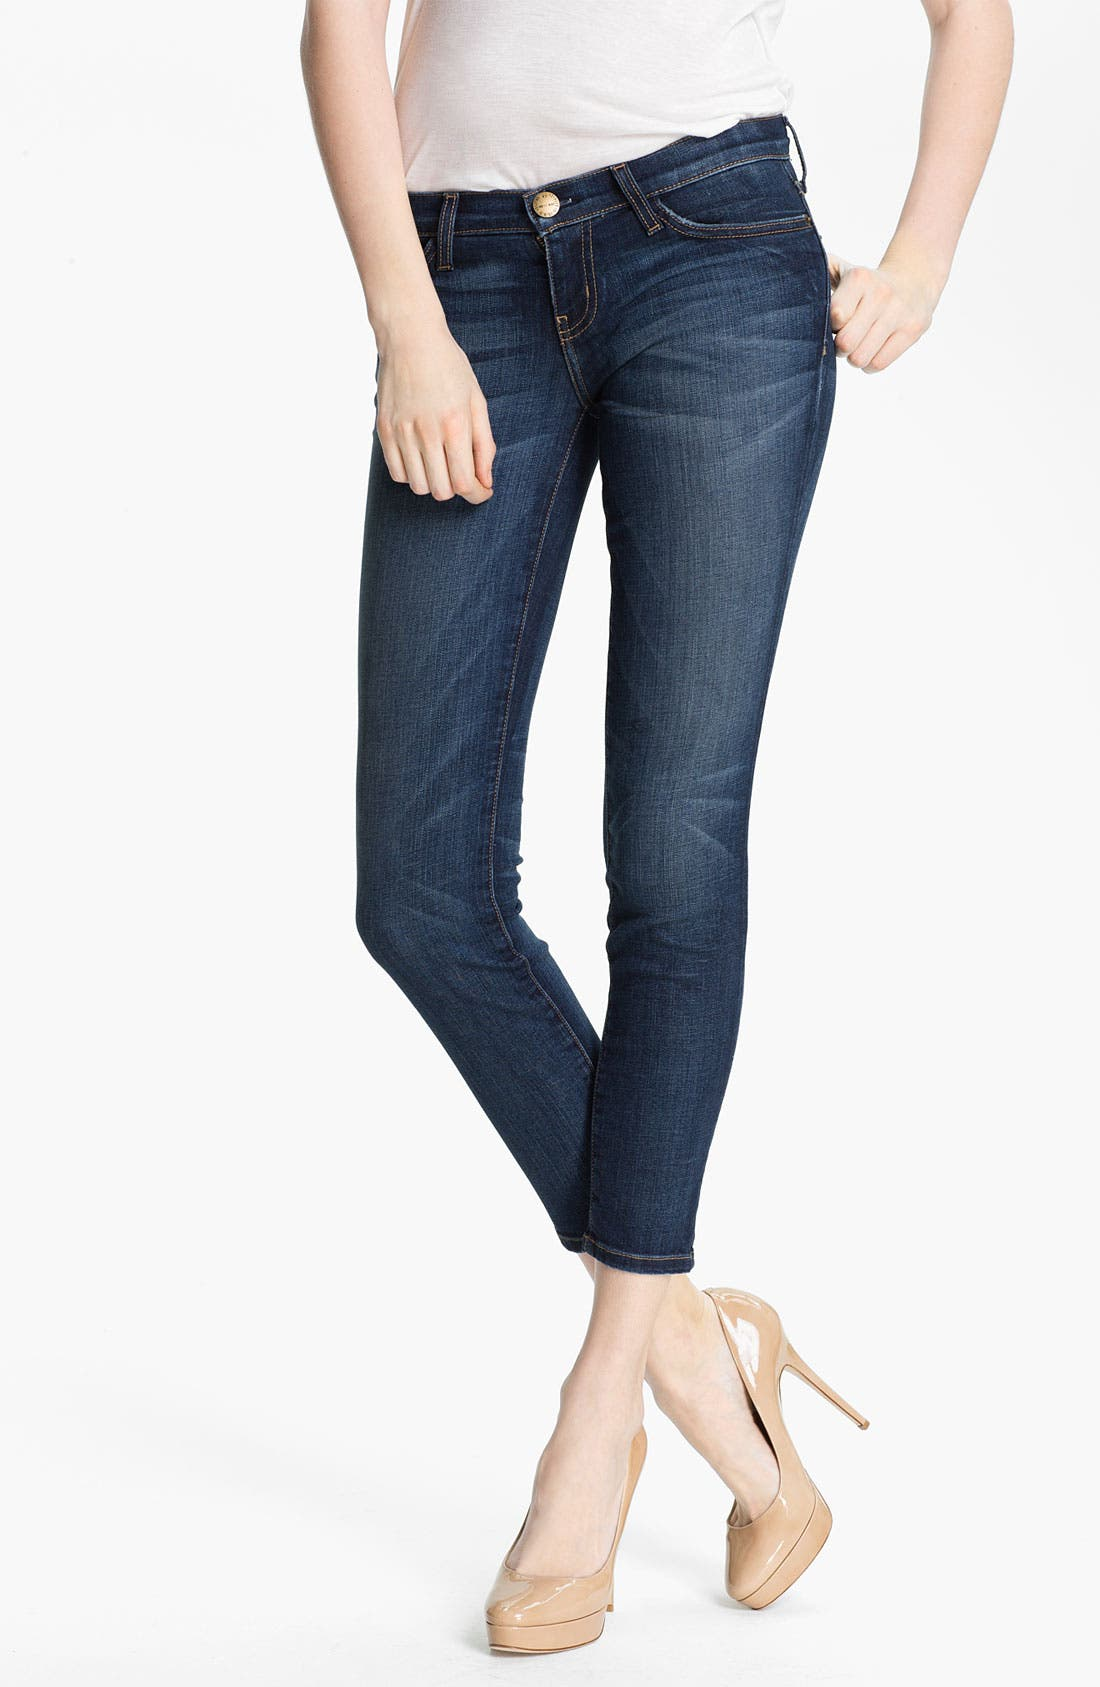 Alternate Image 1 Selected - Current/Elliott 'The Stiletto' Stretch Jeans (Townie)